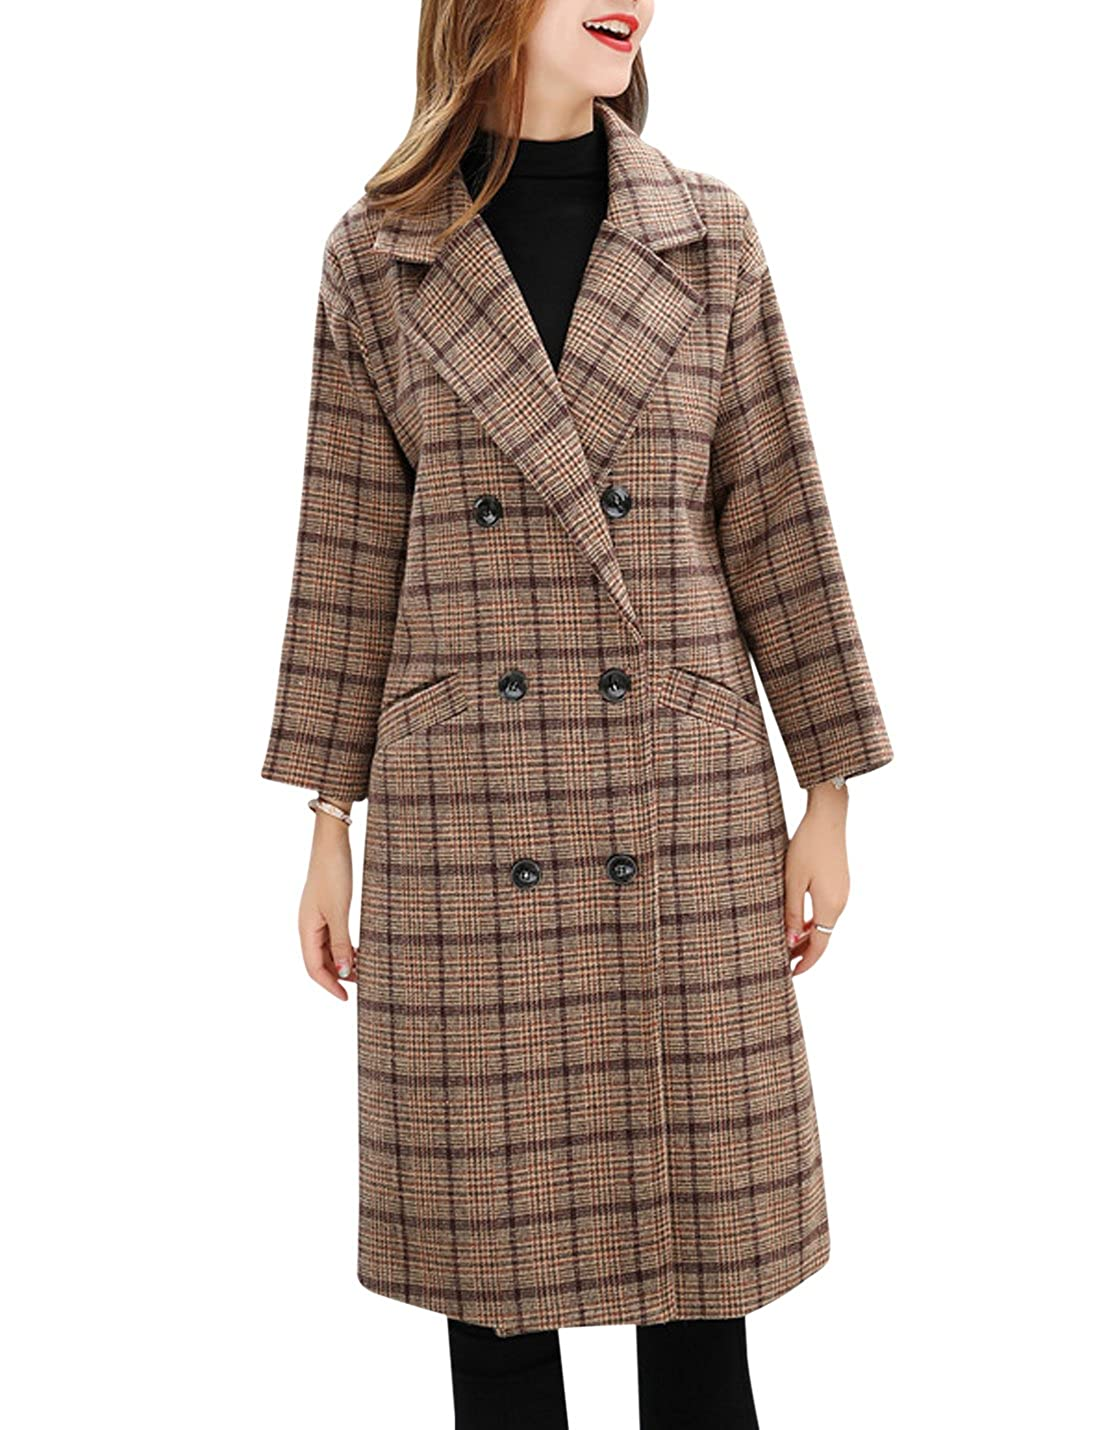 1940s Coats & Jackets Fashion History Tanming Womens Double Breasted Long Plaid Wool Blend Pea Coat Outerwear $49.99 AT vintagedancer.com